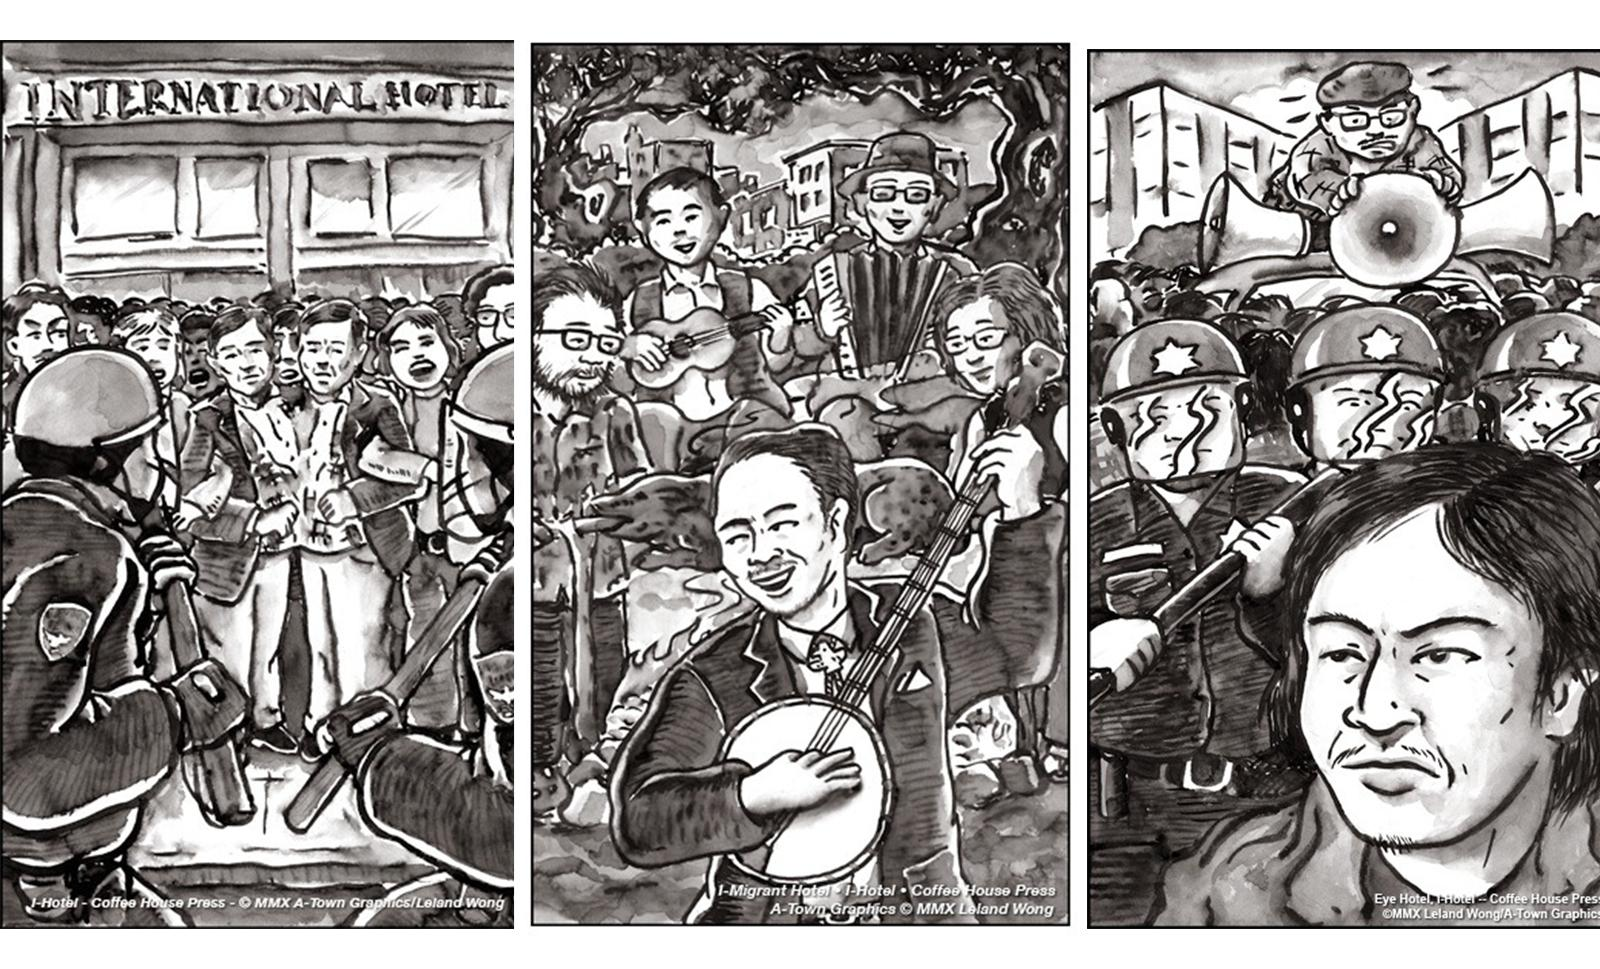 Three Chinese ink illustrations depicting the life and protests around the I Hotel